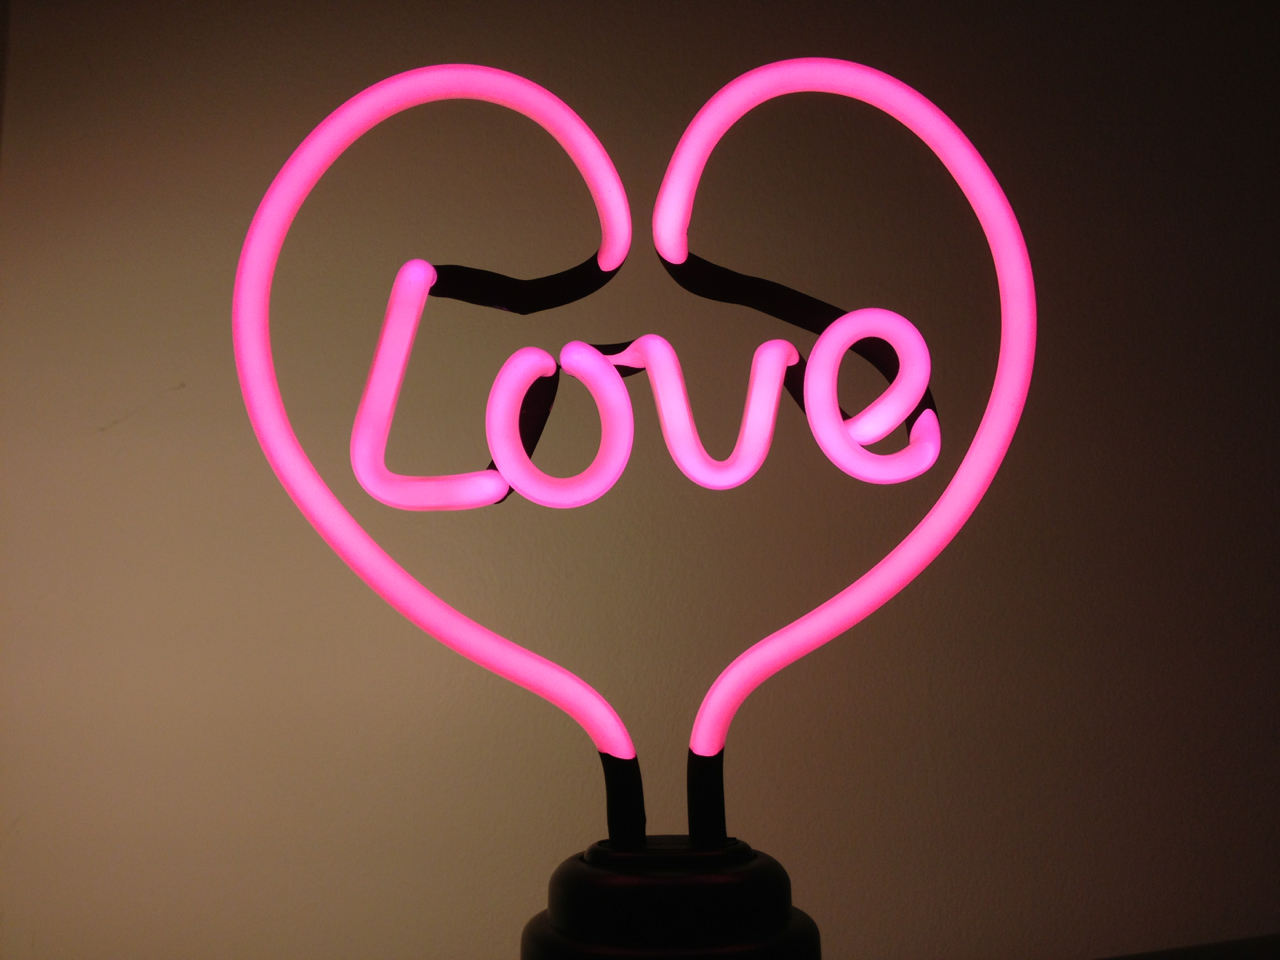 41 Images About Neon Signs On We Heart It See More Light And Pink